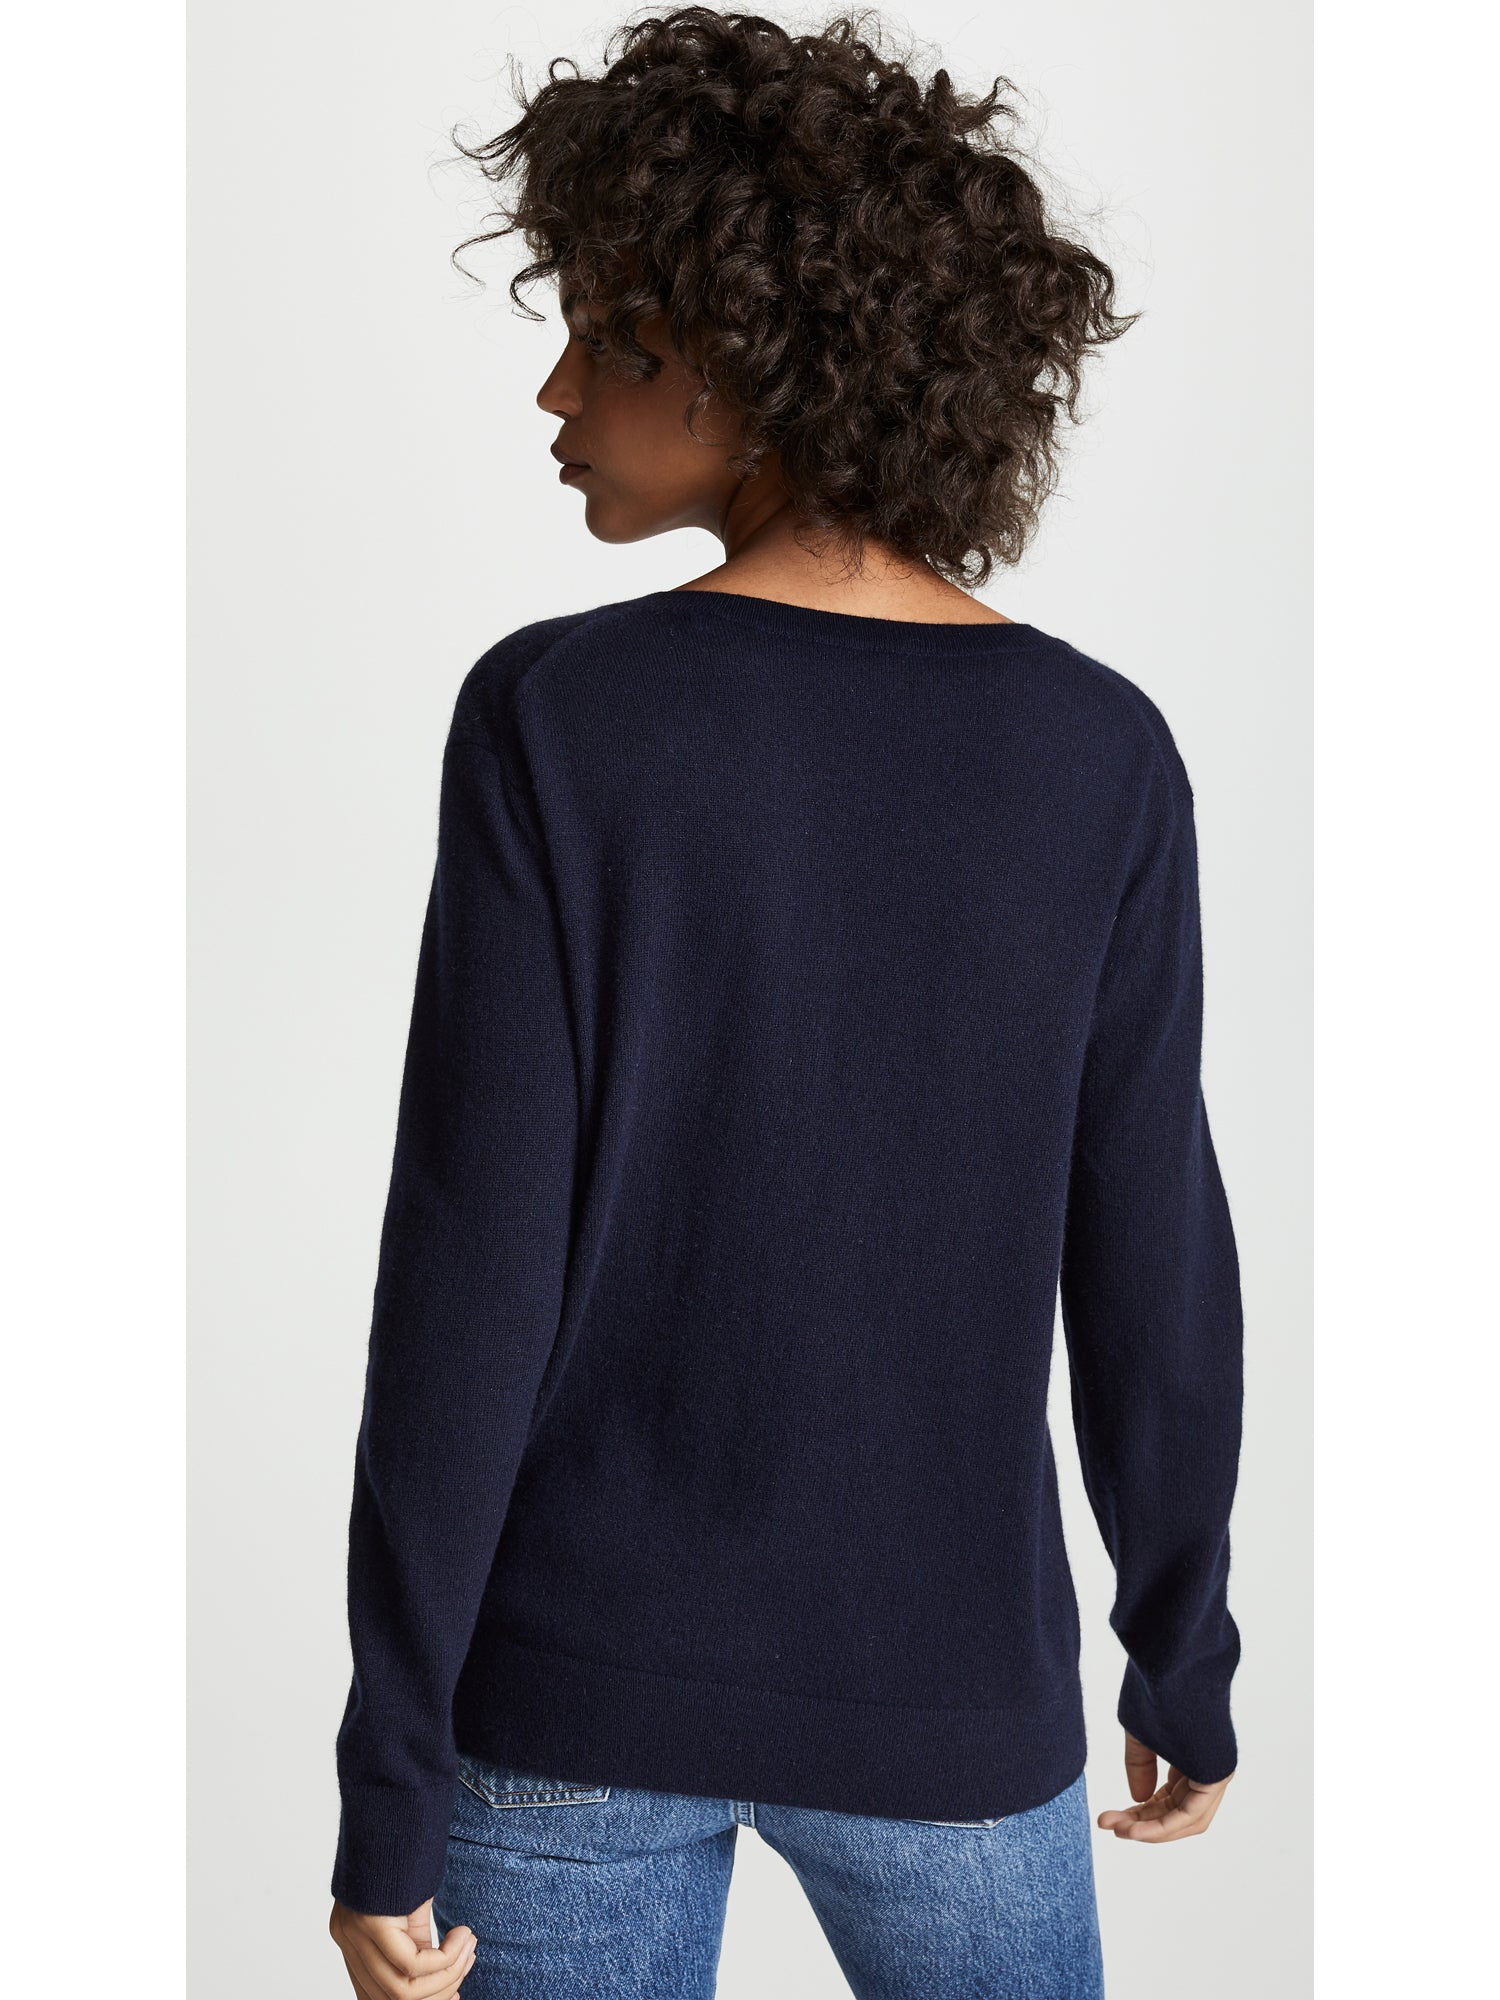 Vince Weekend V-Neck Cashmere Sweater - Coastal Navy Blue | TILDEN